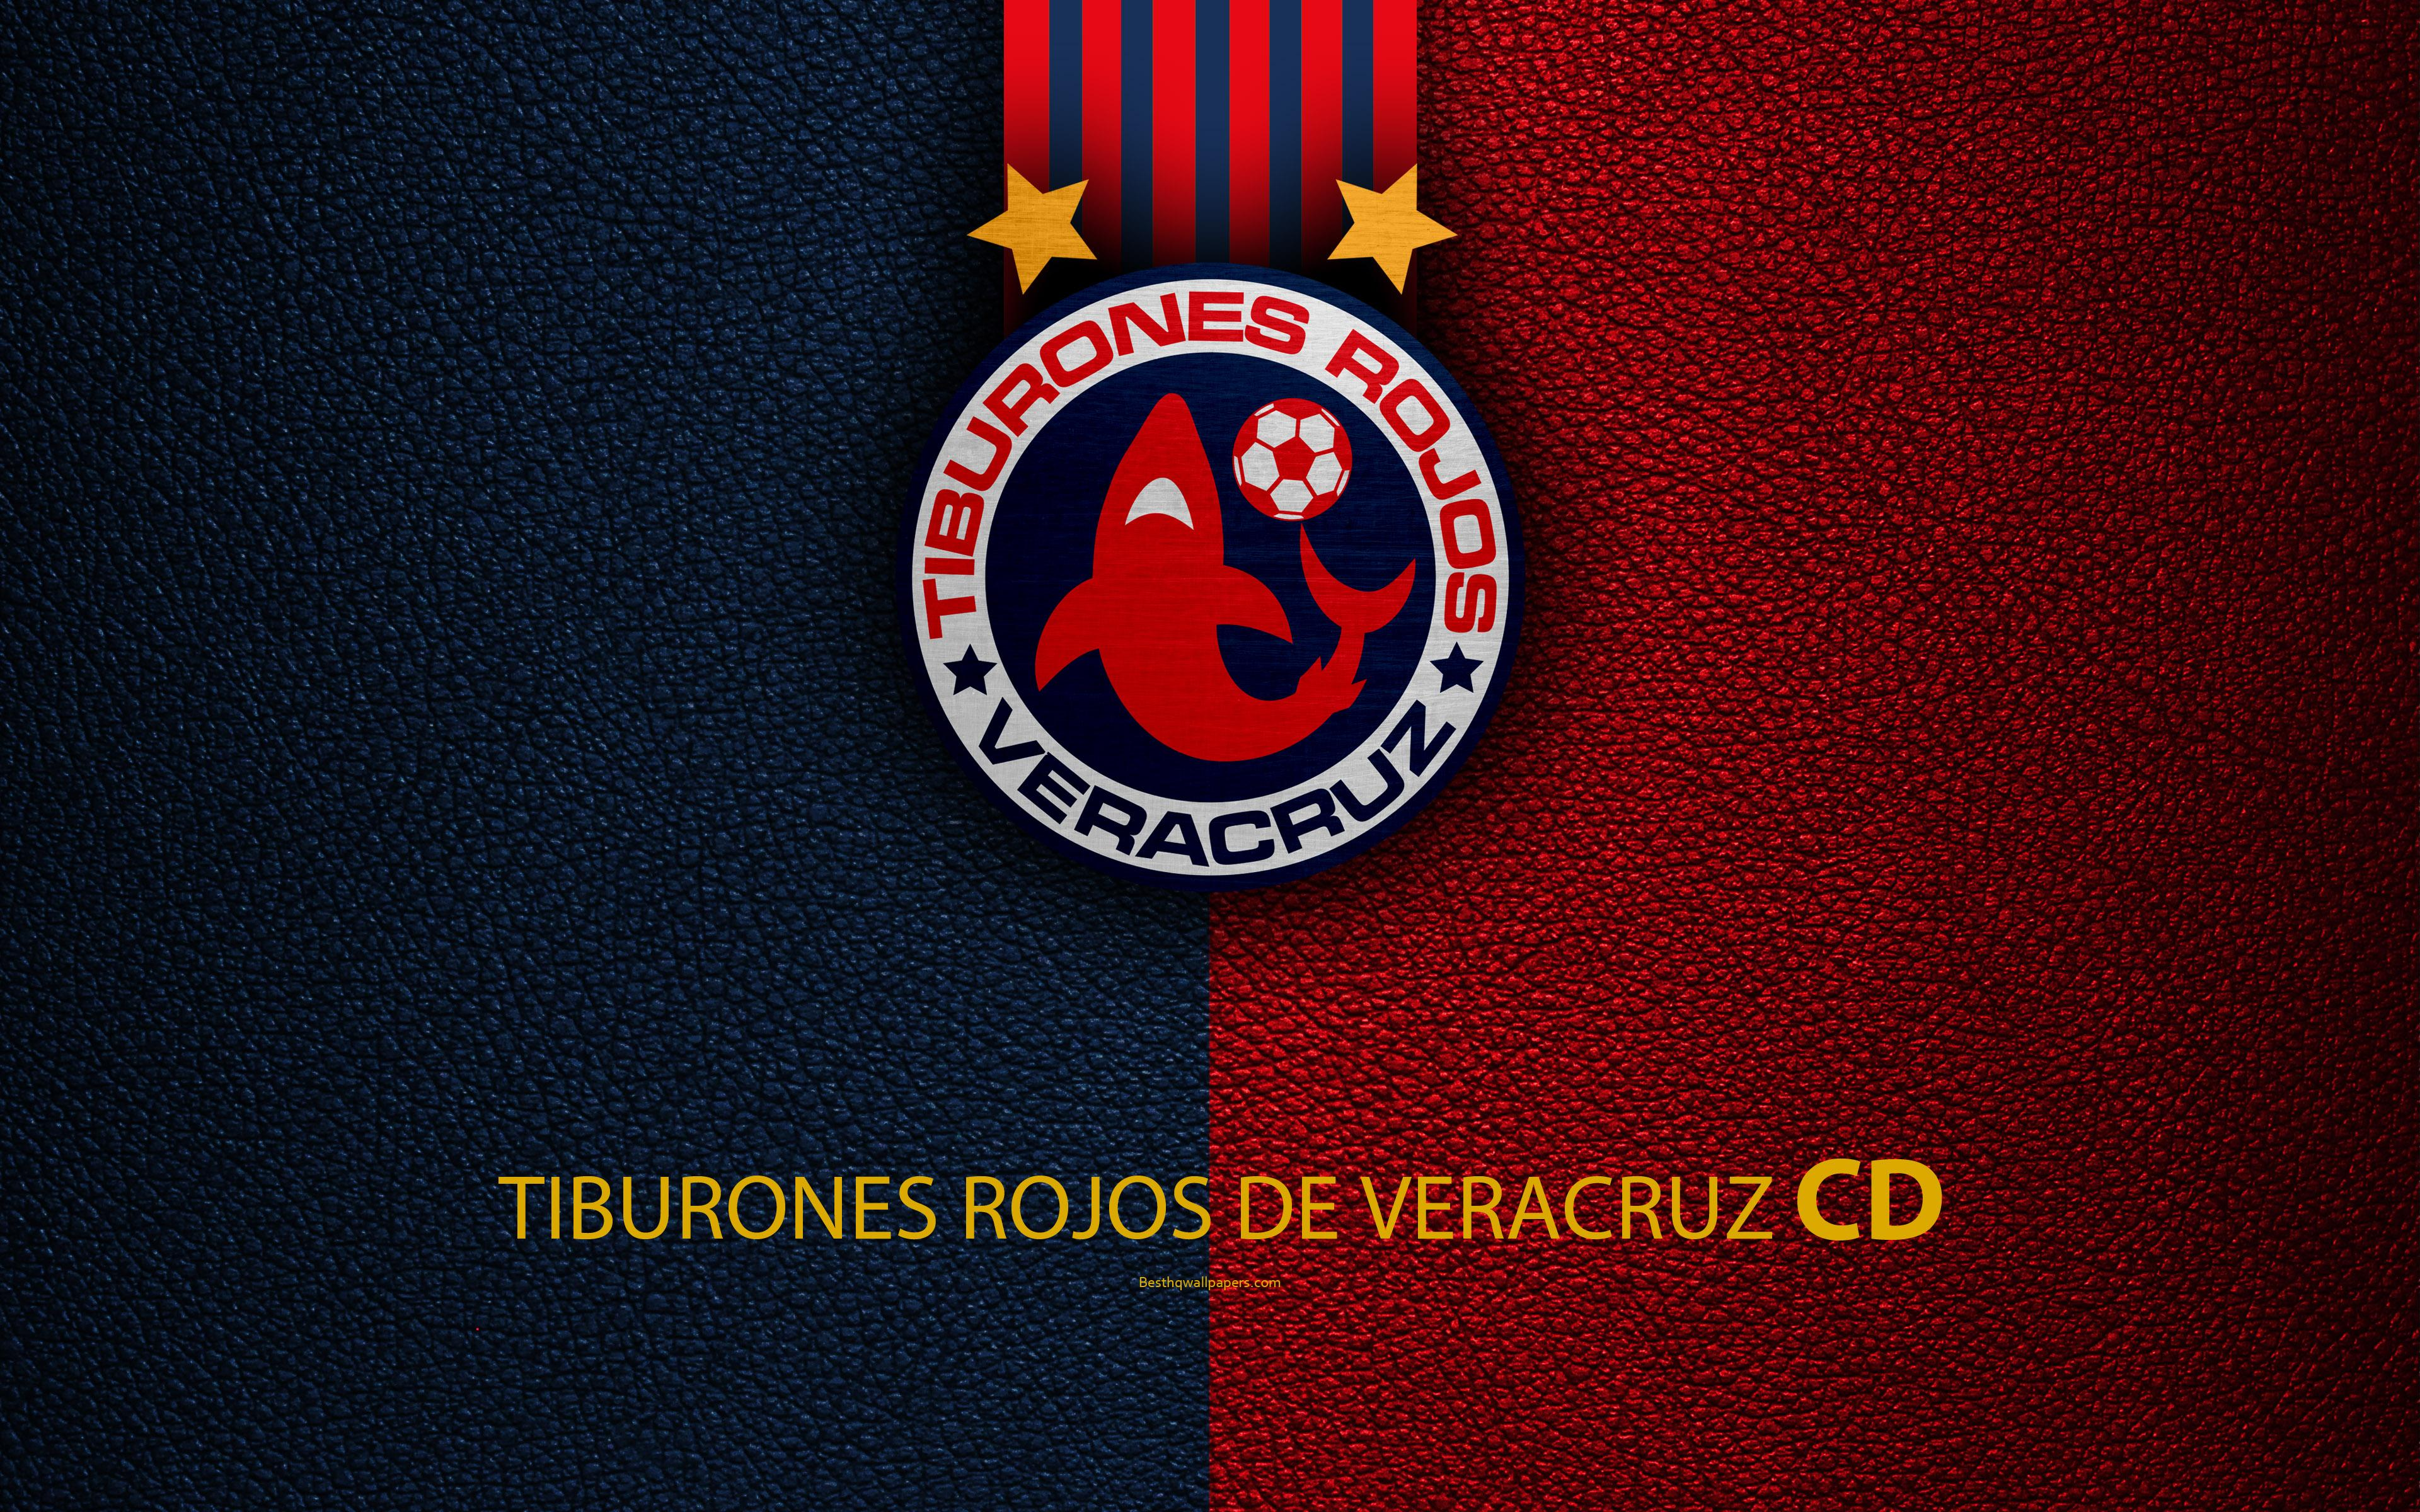 Download wallpapers Veracruz FC, CD Tiburones Rojos de Veracruz, 4k